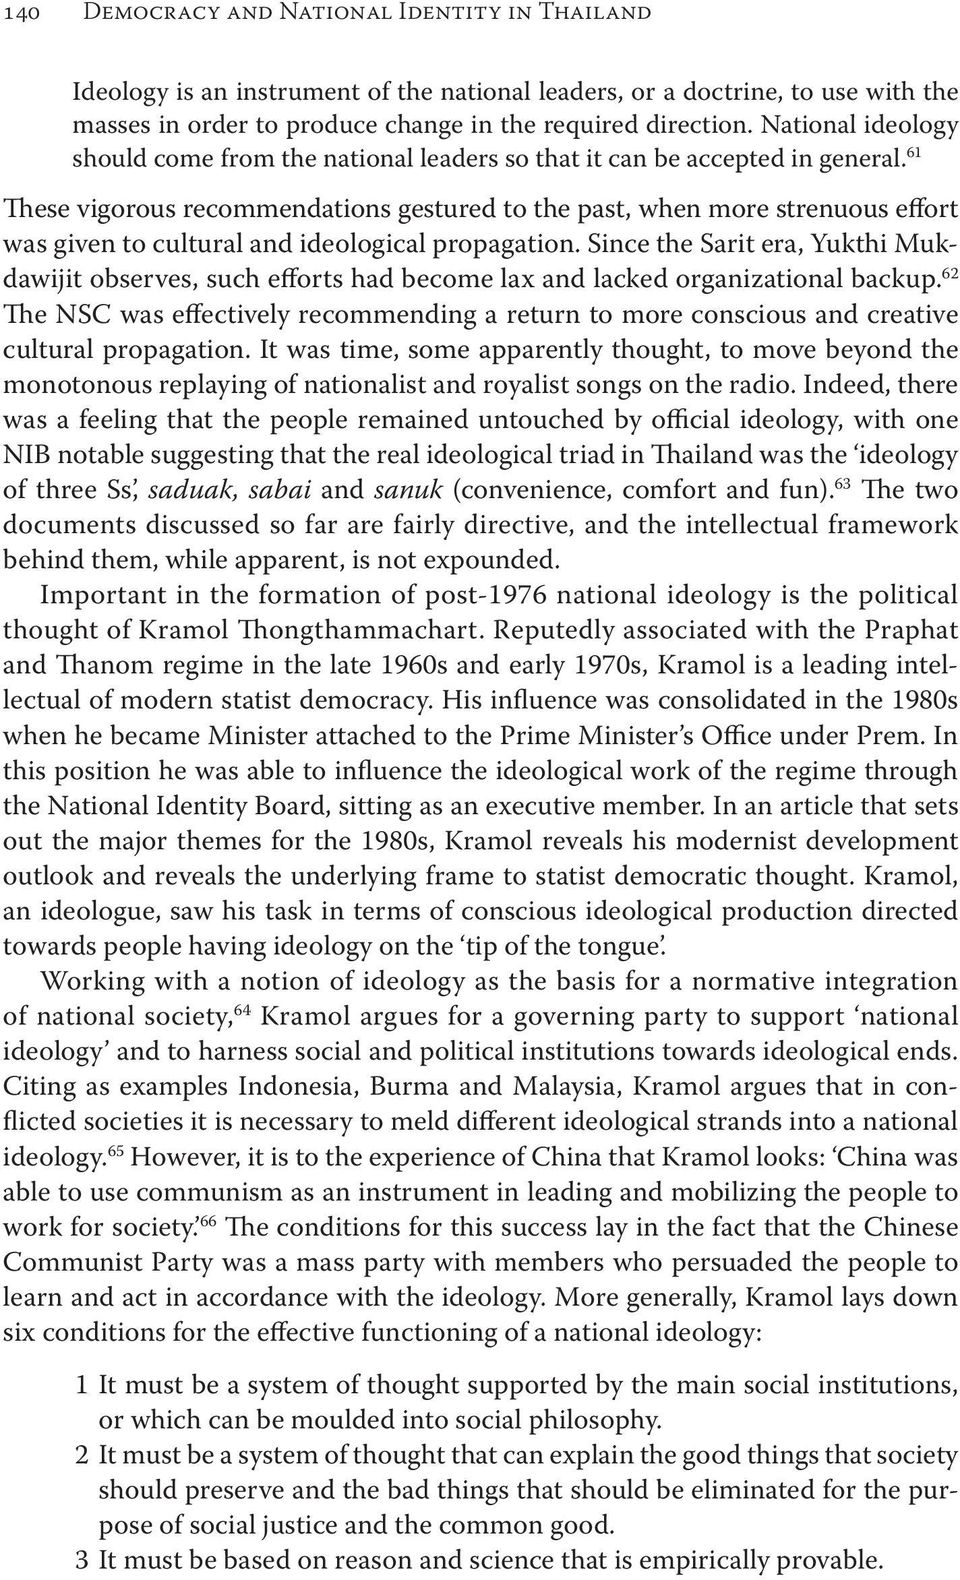 61 These vigorous recommendations gestured to the past, when more strenuous effort was given to cultural and ideological propagation.